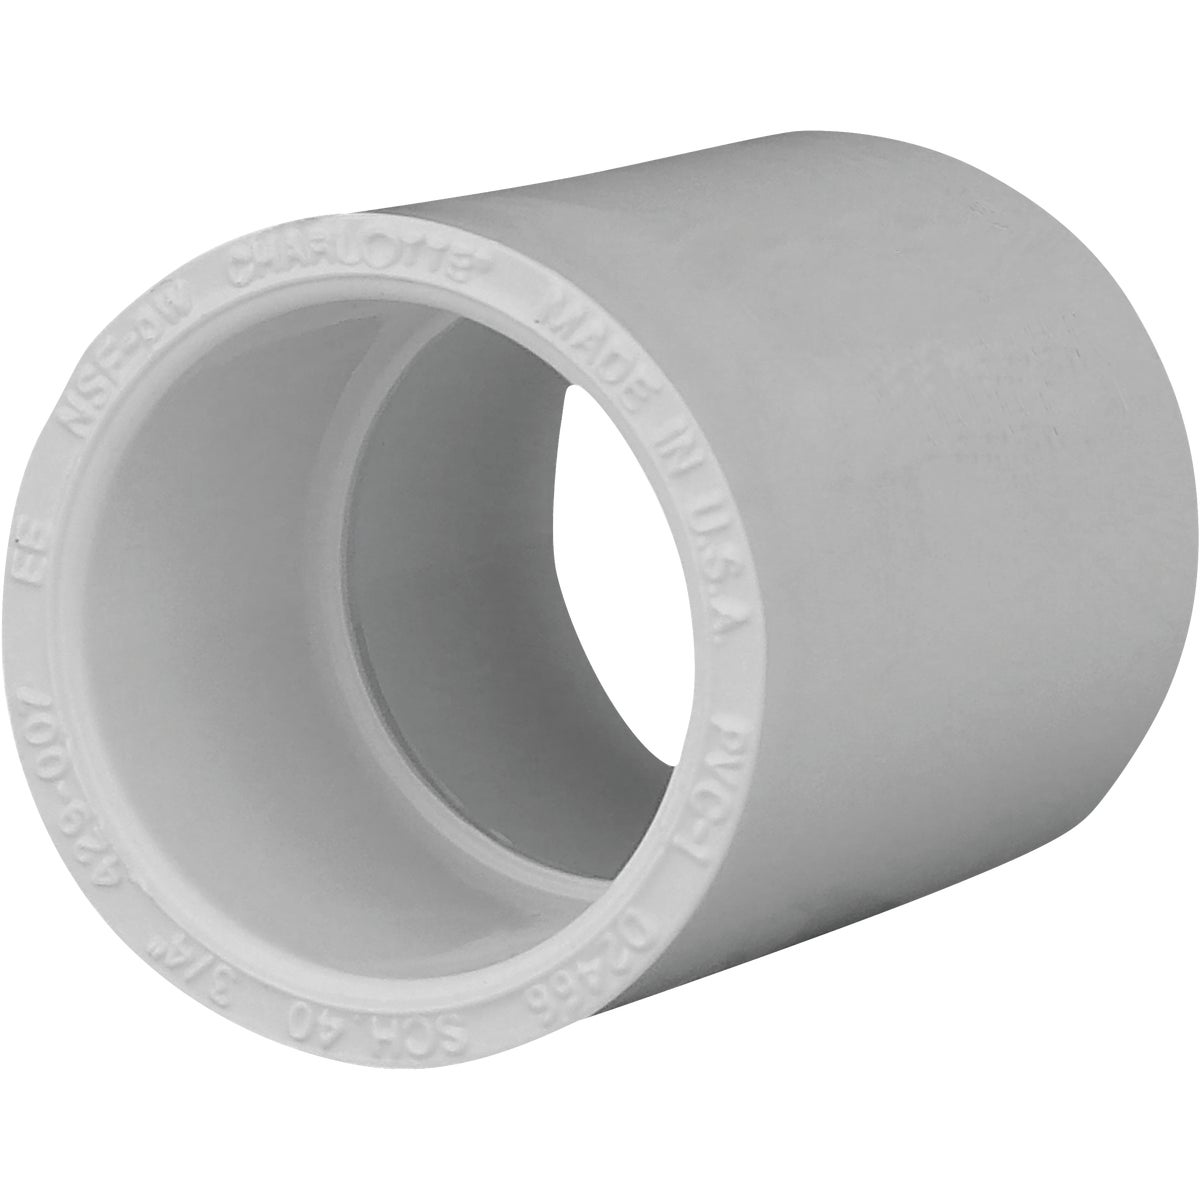 "3/4"" SCH40 PVC COUPLING - 30107 by Genova Inc"